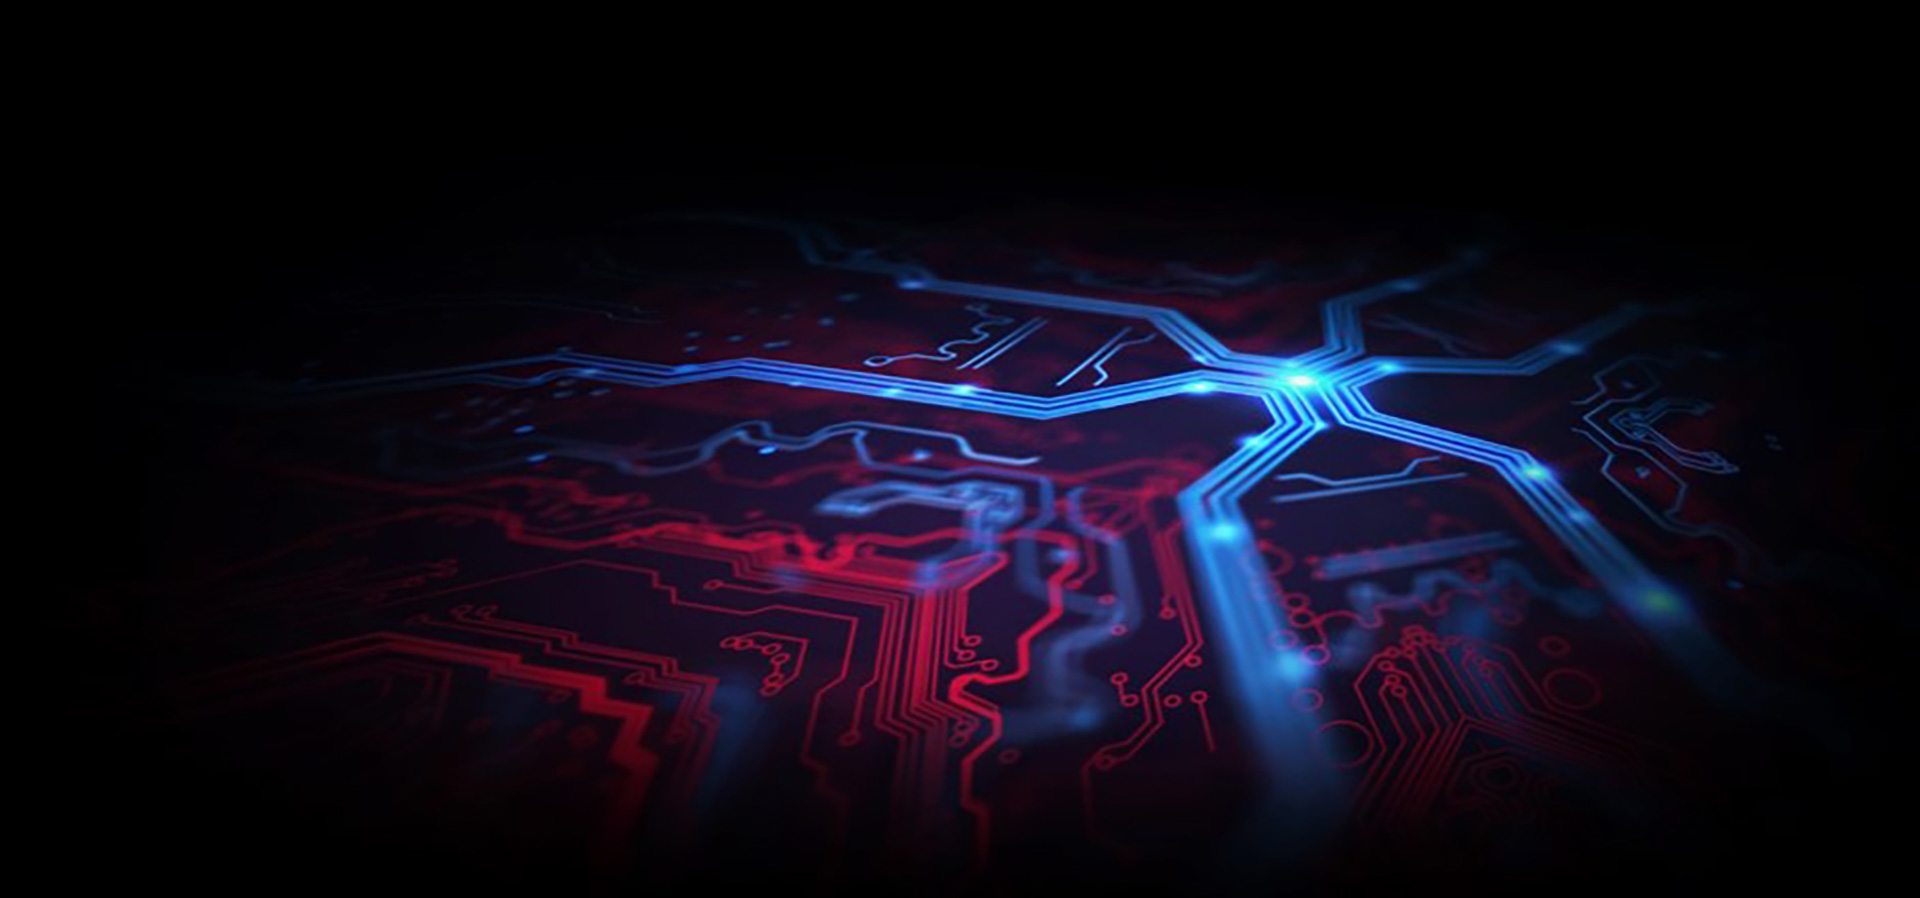 Circuitry graphic in blue and red